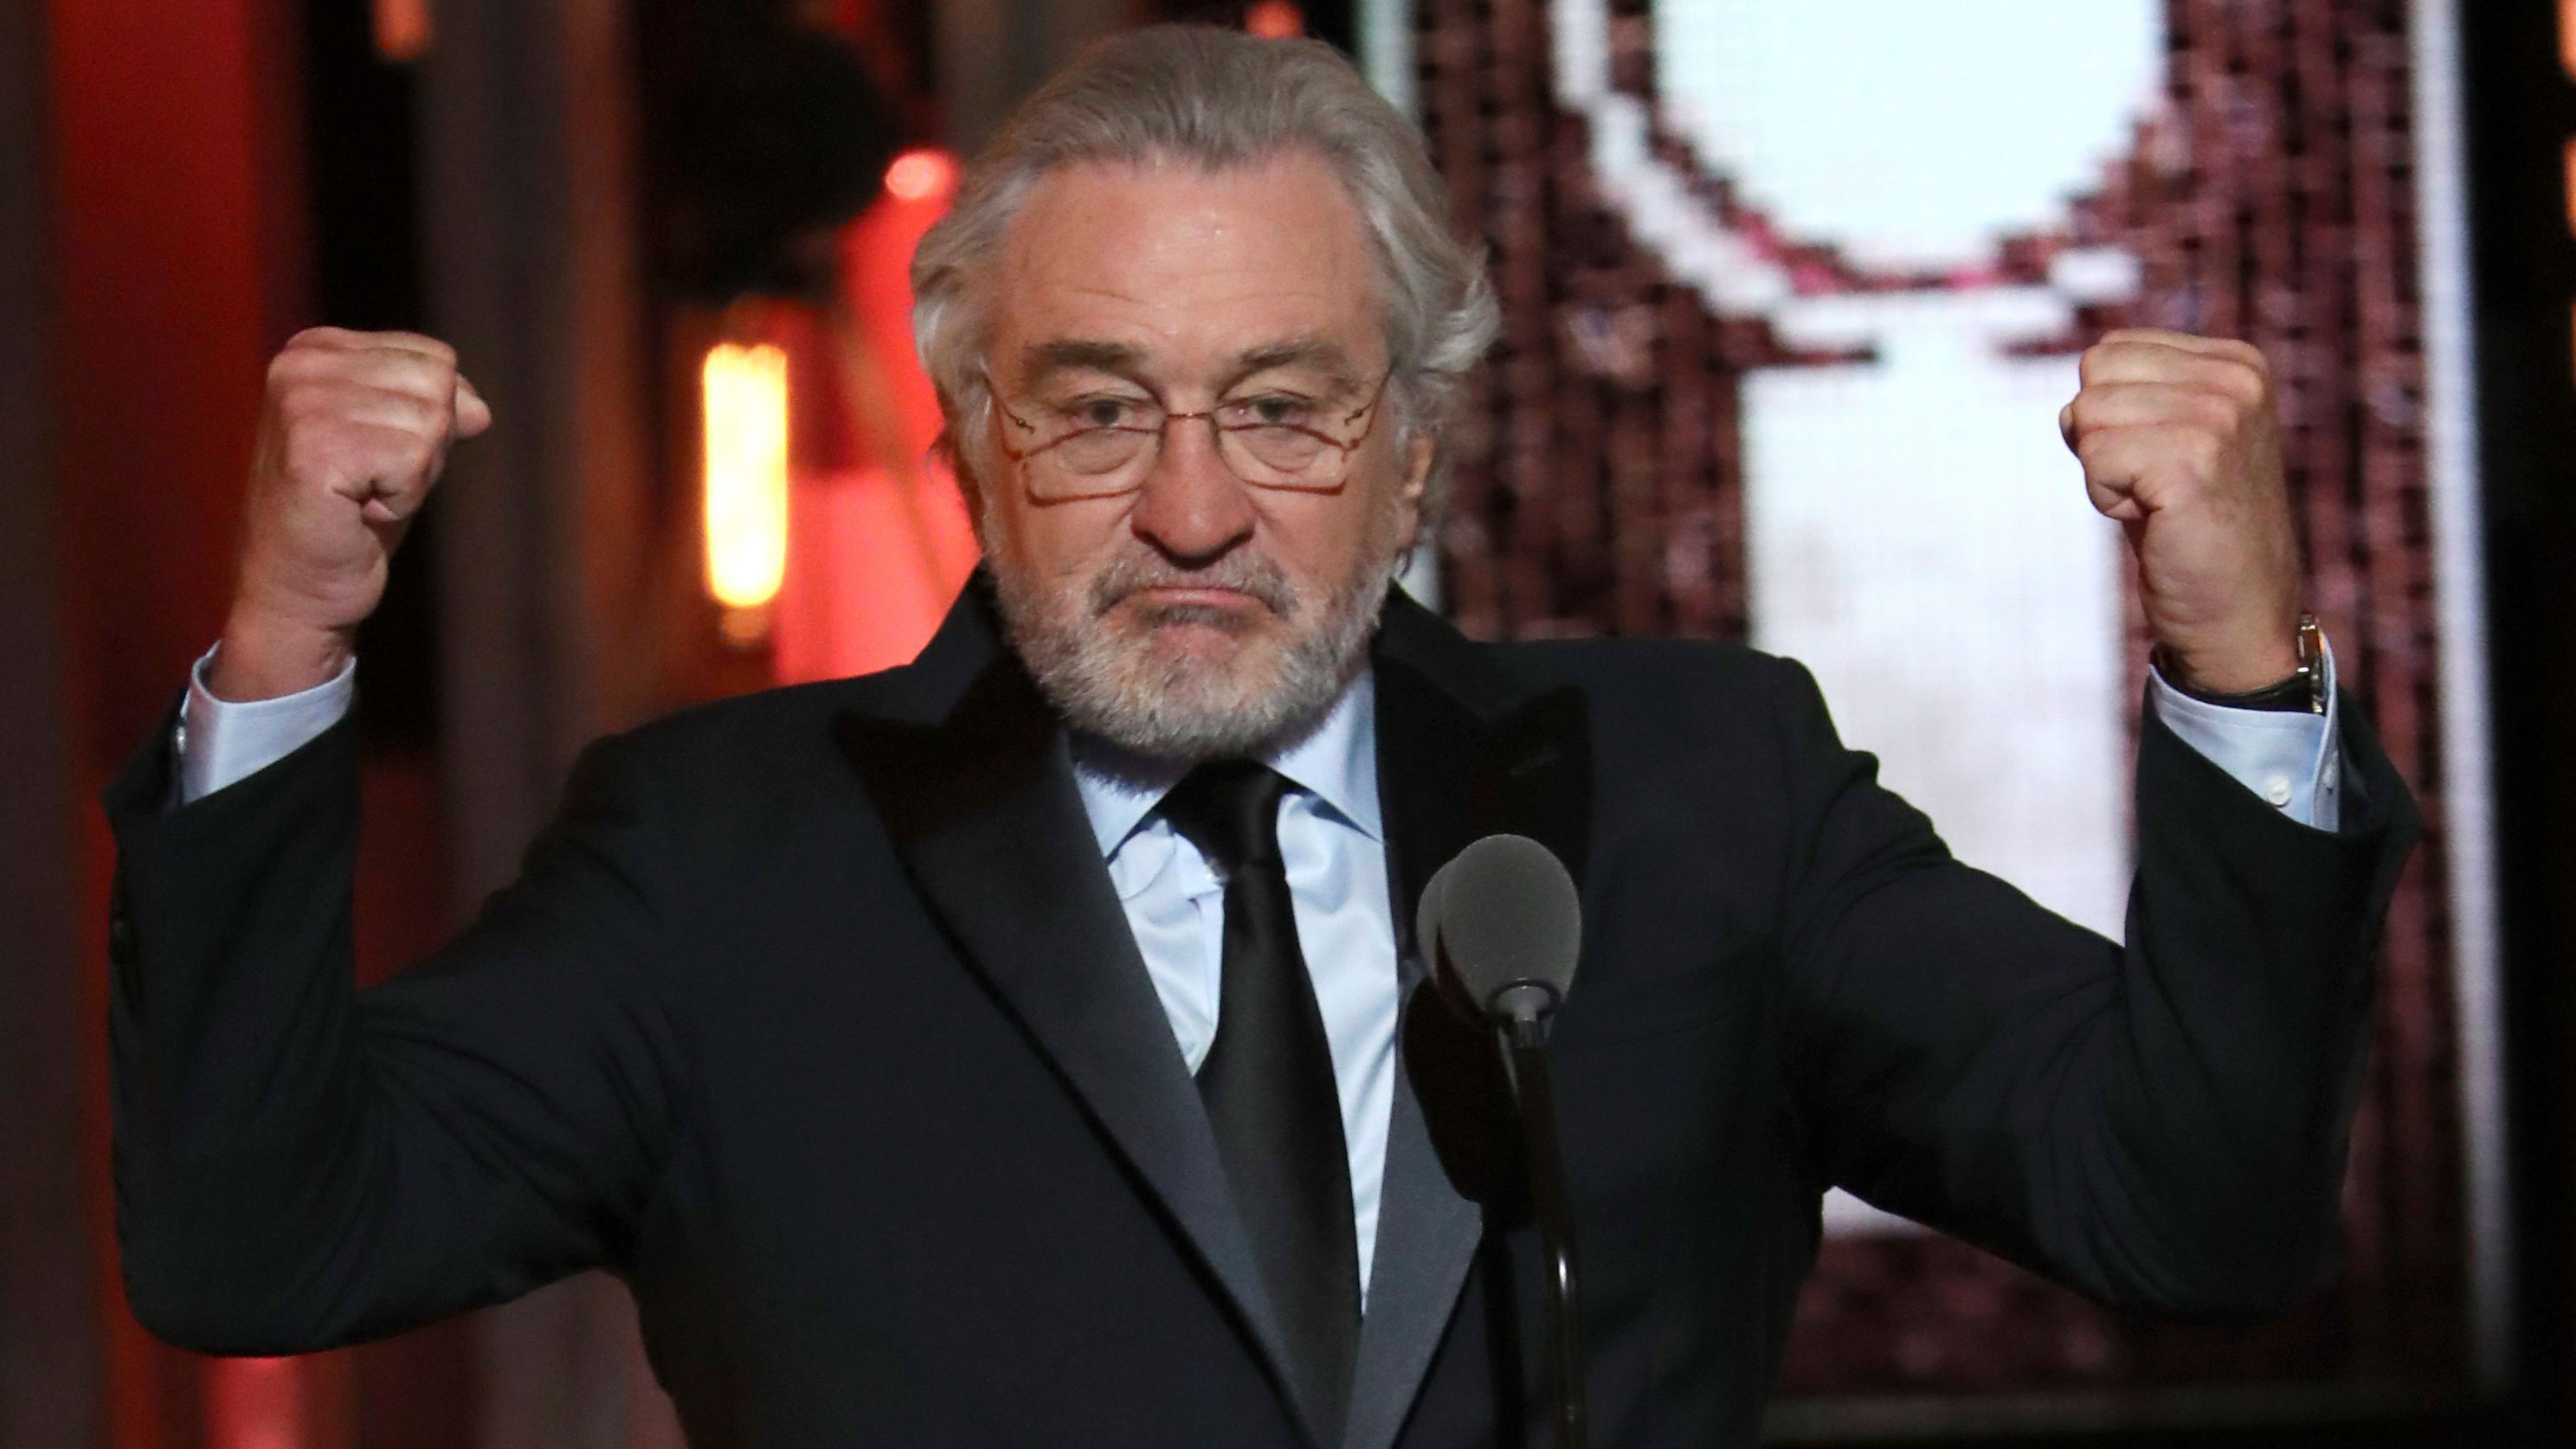 Robert De Niro gets standing ovation for Trump blast at Tony Awards